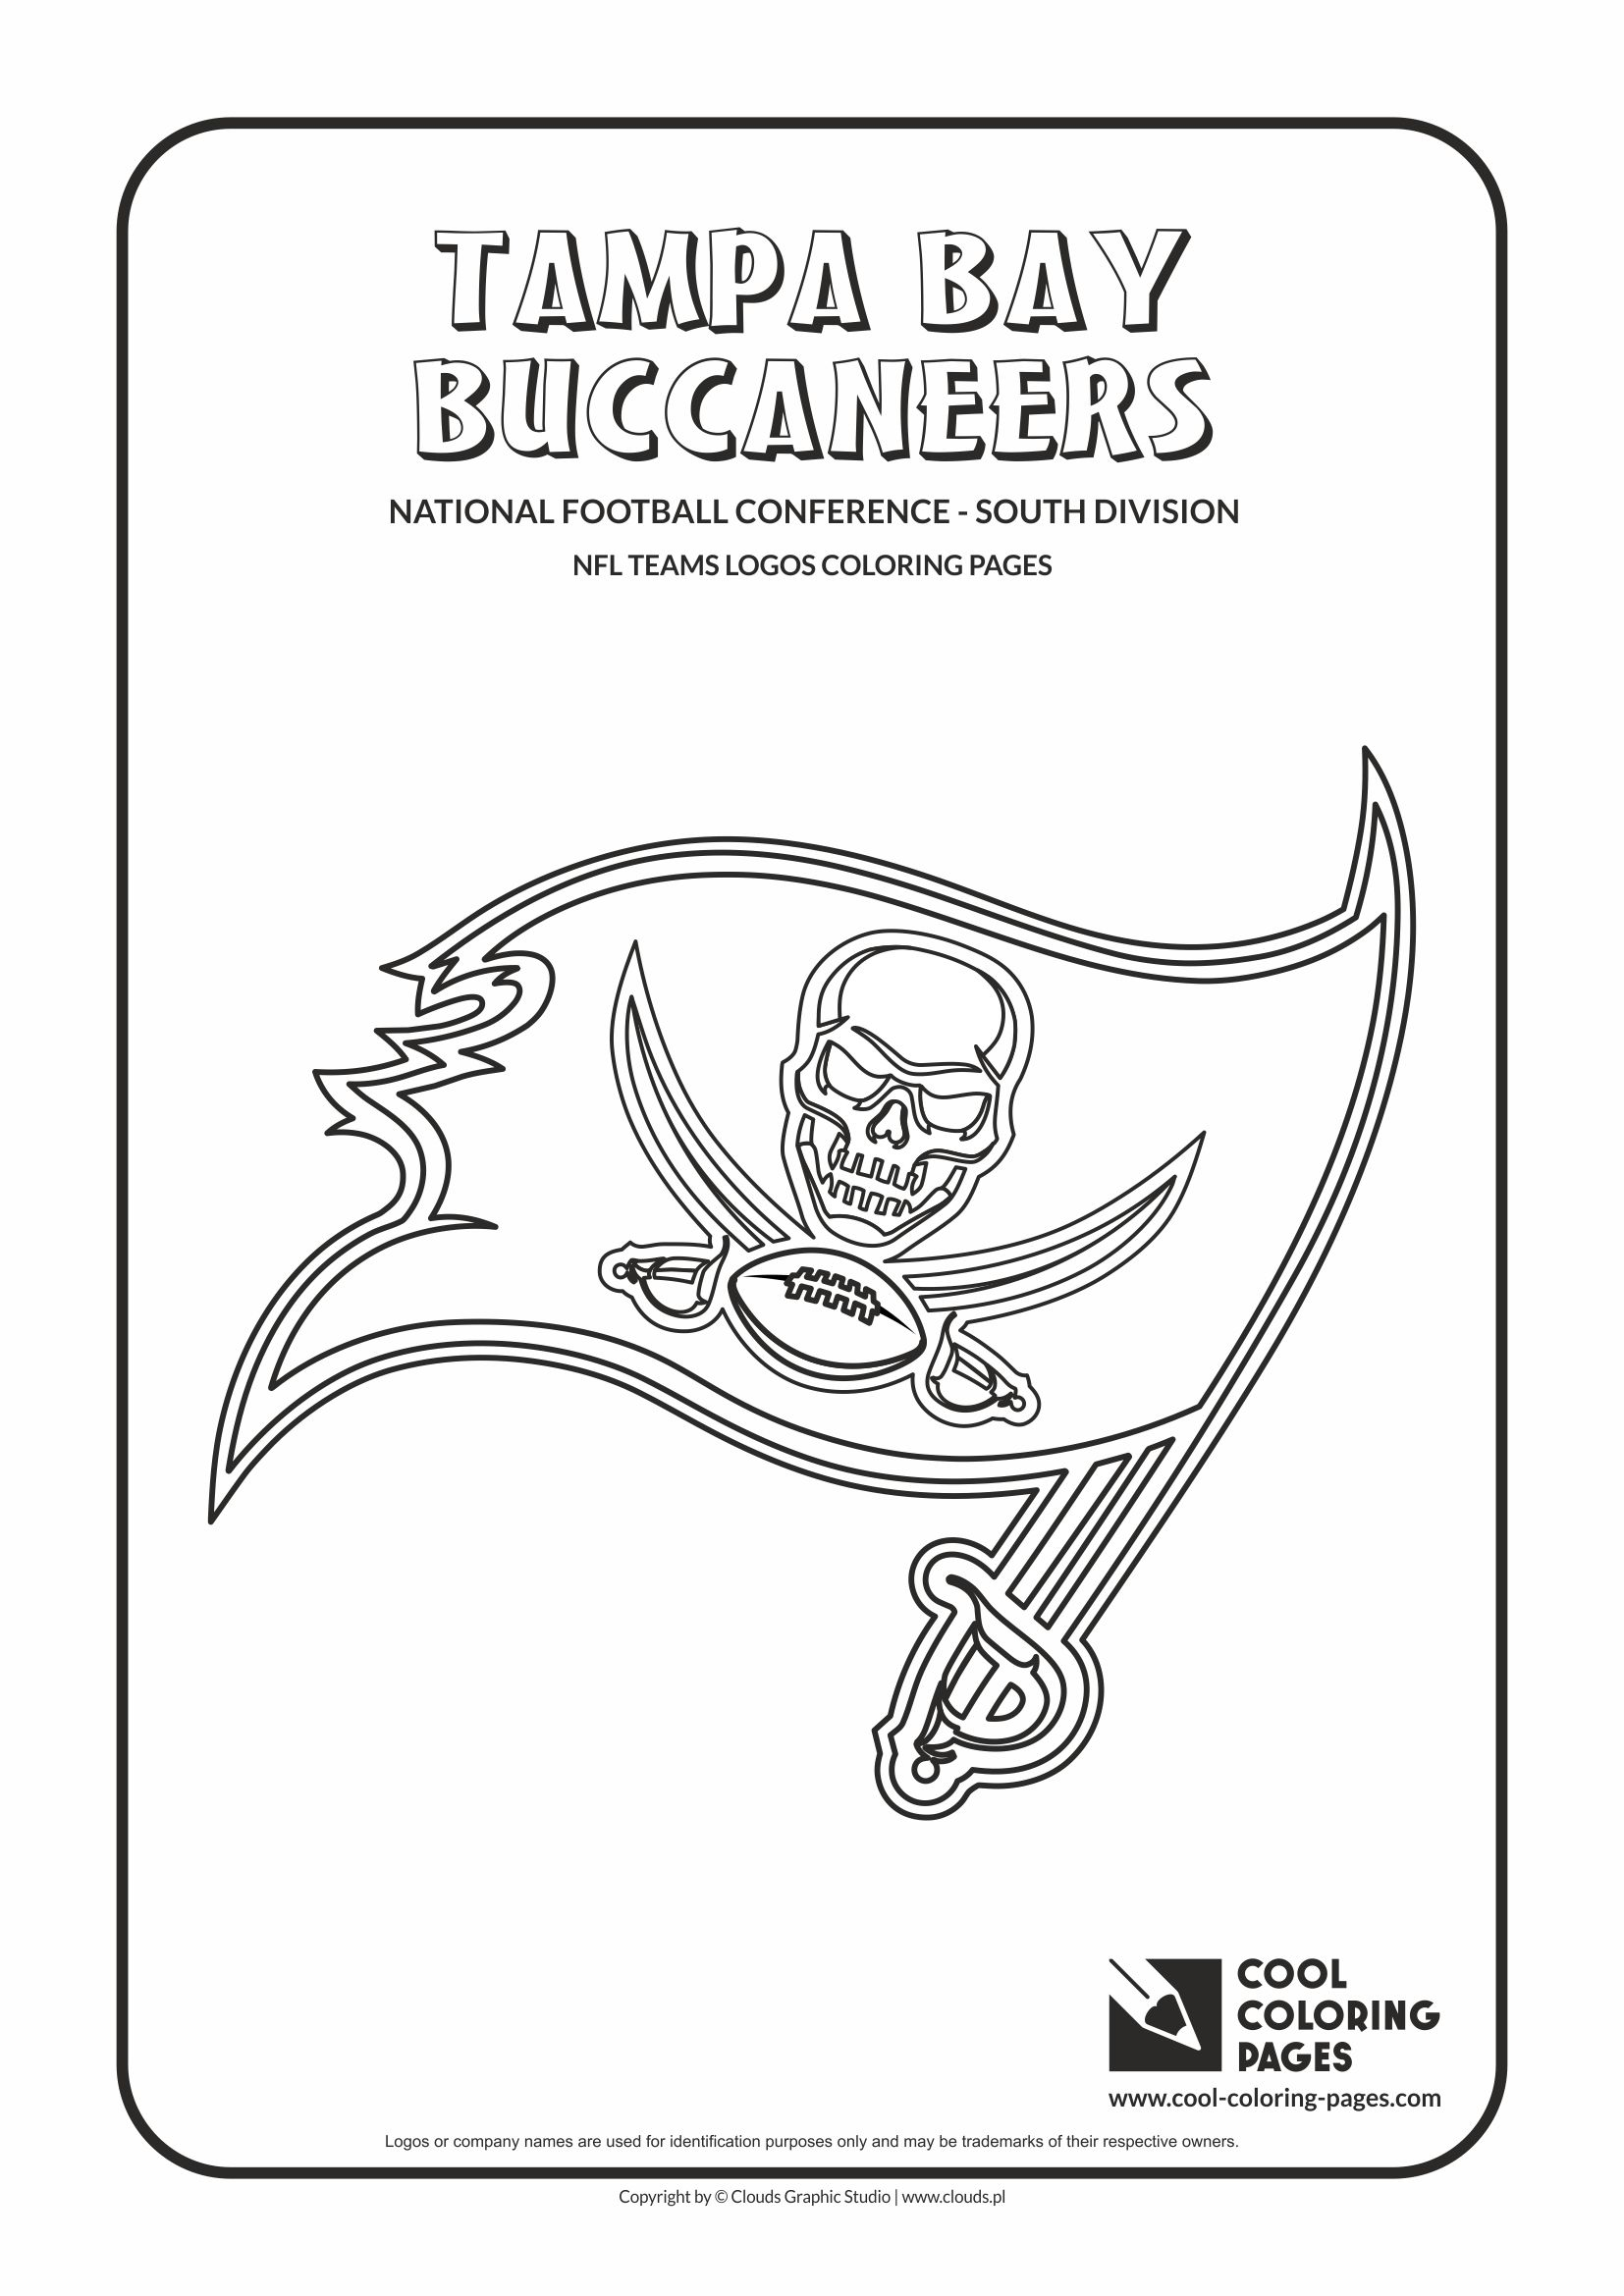 Cool Coloring Pages - NFL American Football Clubs Logos - National Football Conference - South Division / Tampa Bay Buccaneers logo / Coloring page with Tampa Bay Buccaneers logo